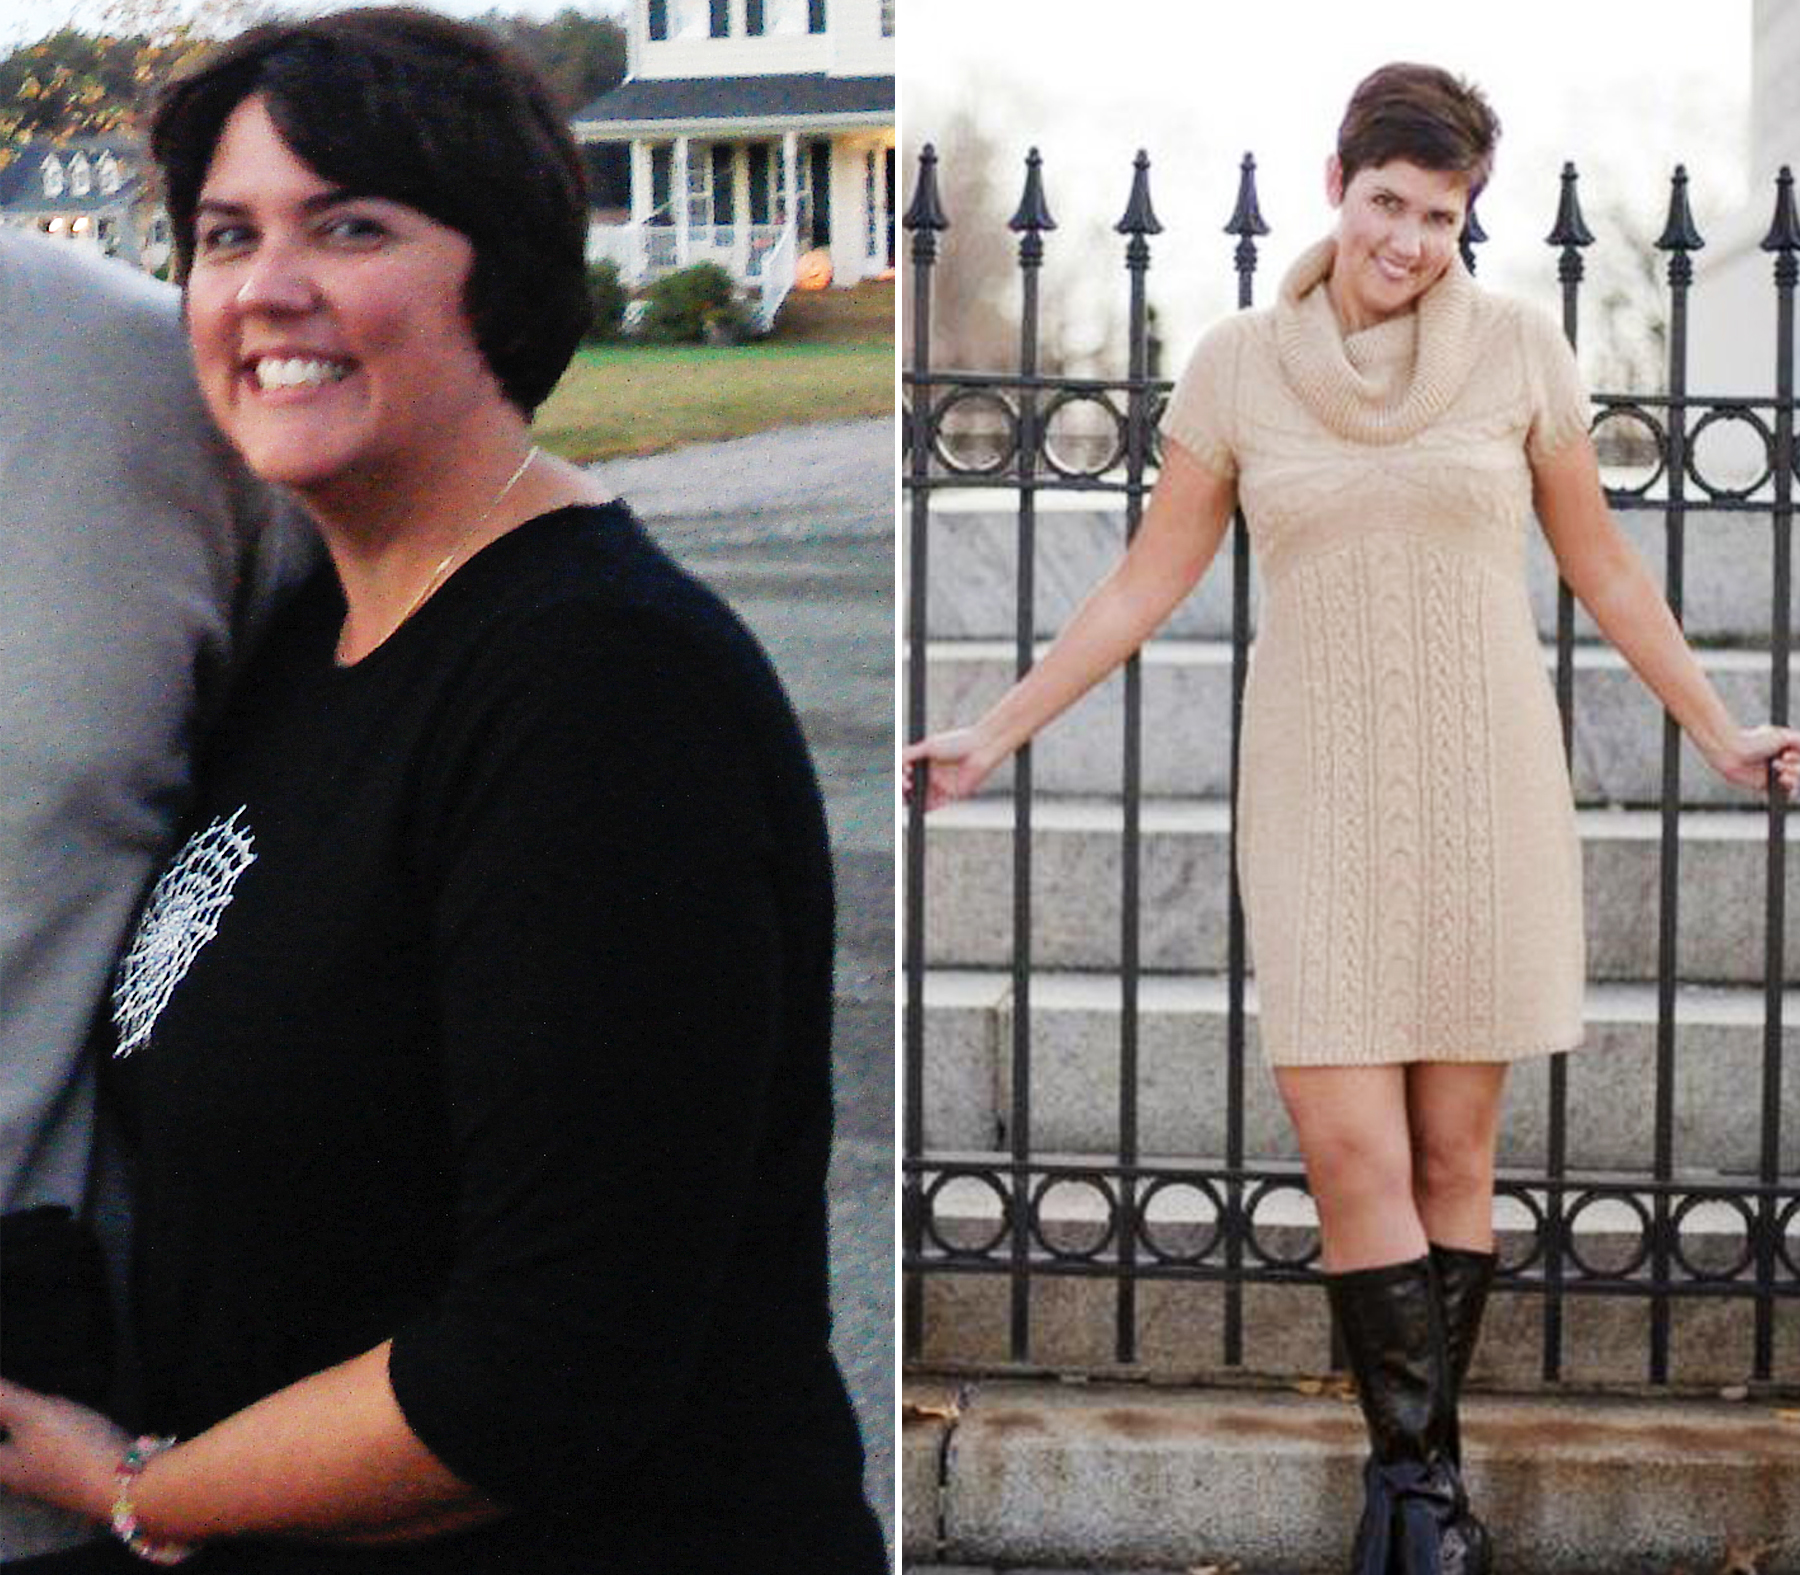 Image: before and after of Julie Stubblefield